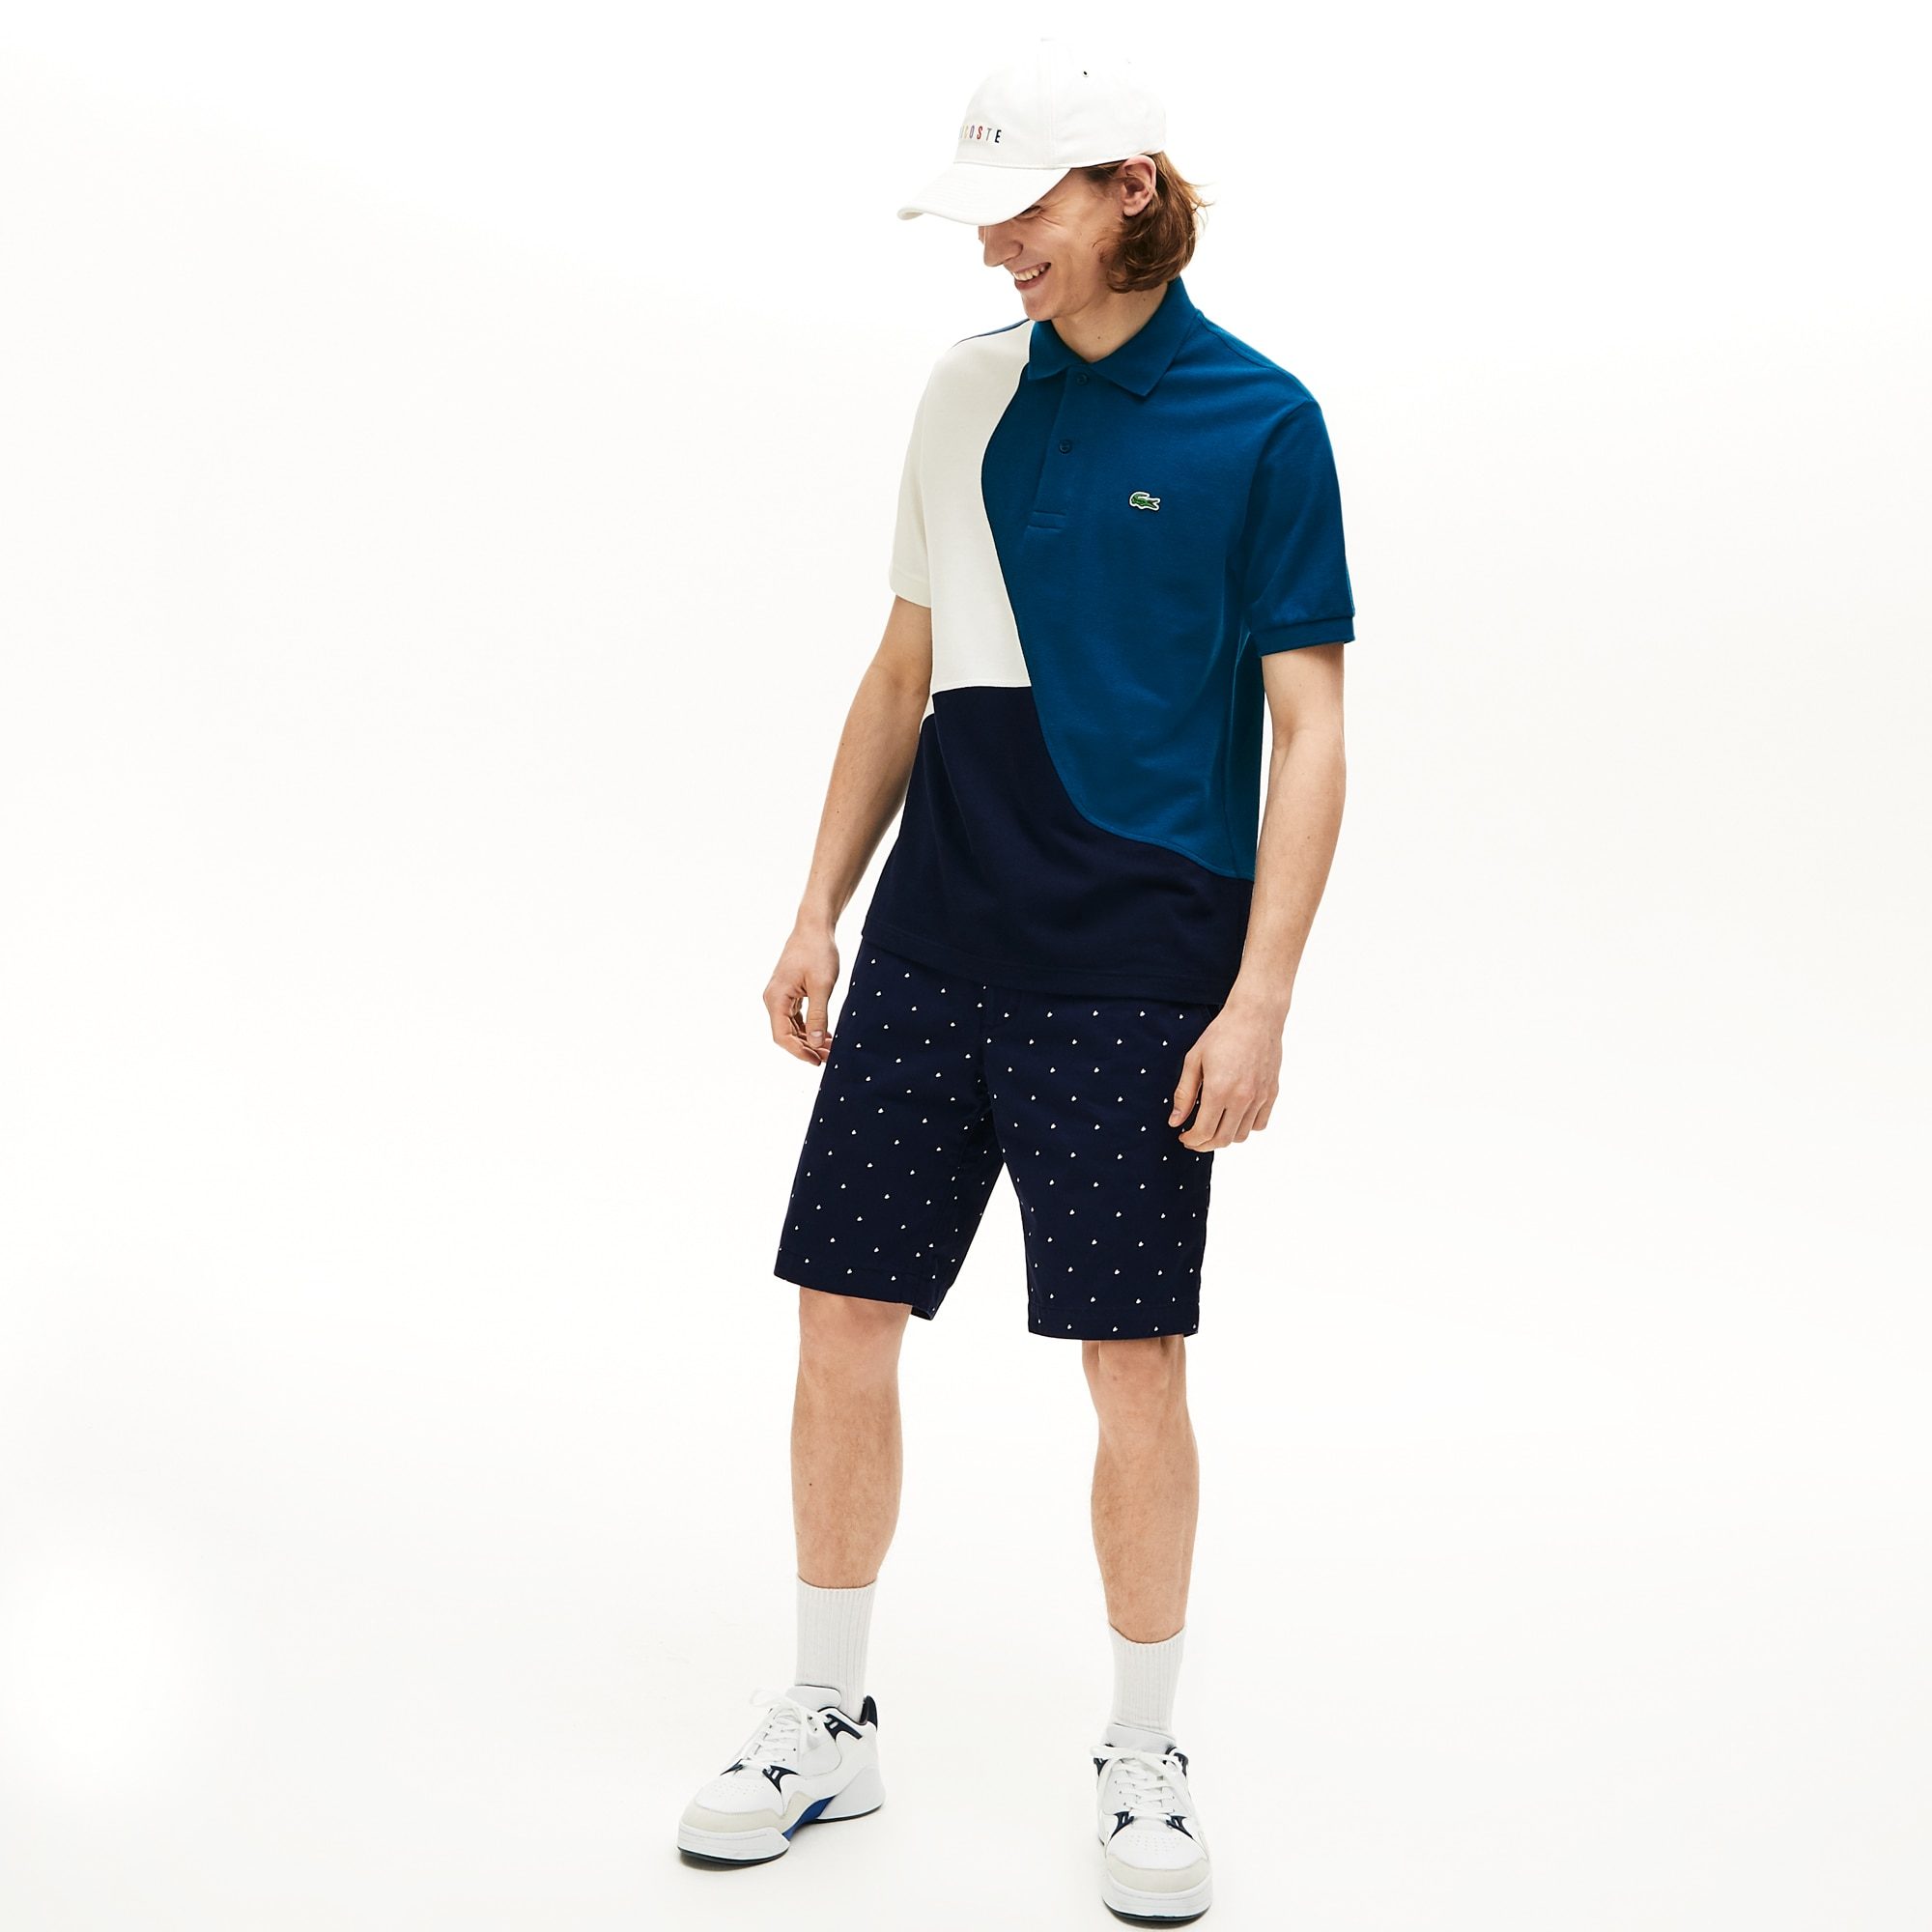 Men's Lacoste L.12.12 Colourblock Thermoregulating Piqué Polo Shirt